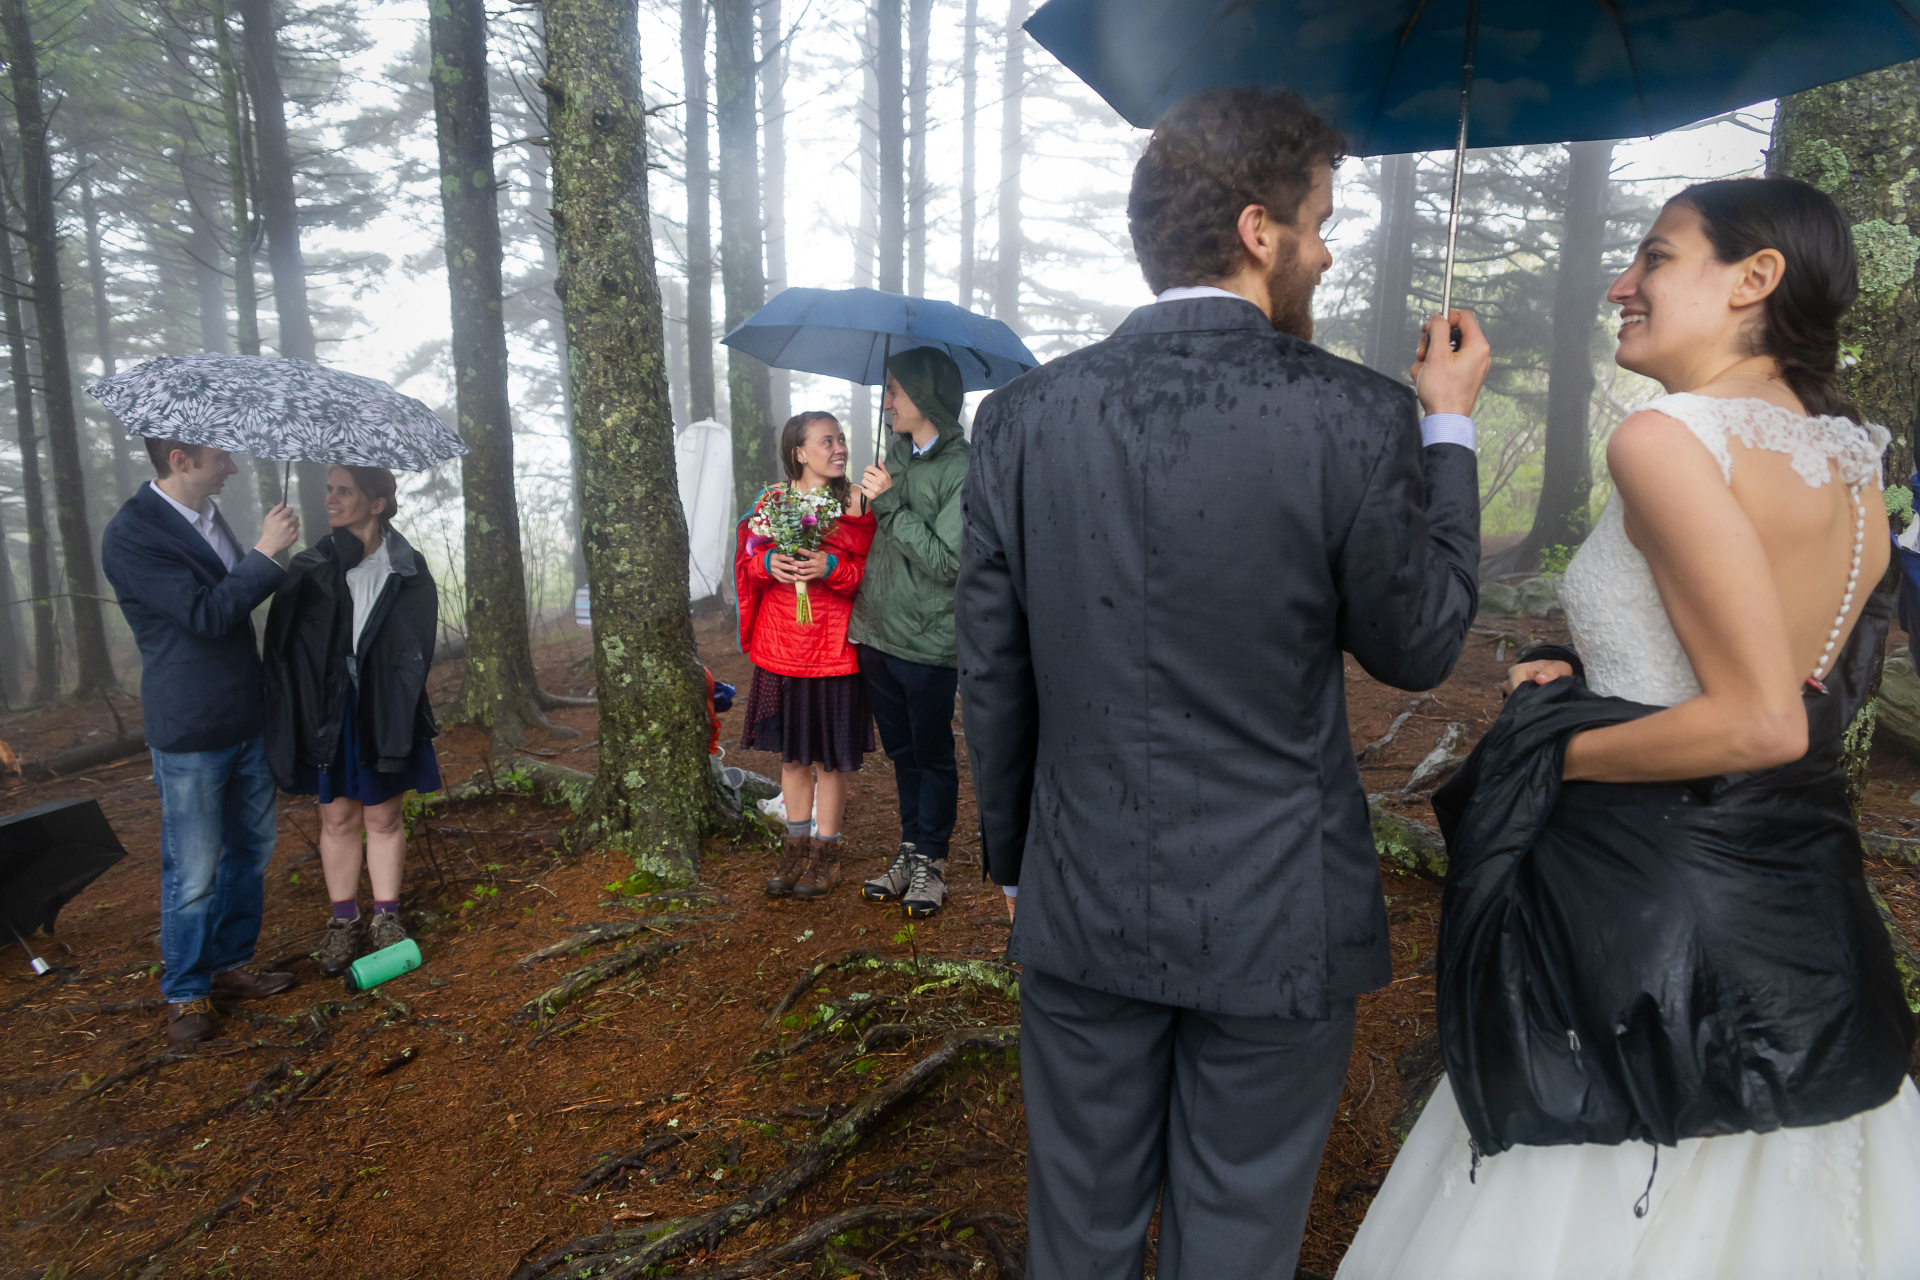 Stand of Trees, North Carolina Elopement Ceremony Rain Foto | Un momento intermedio prima dei brindisi